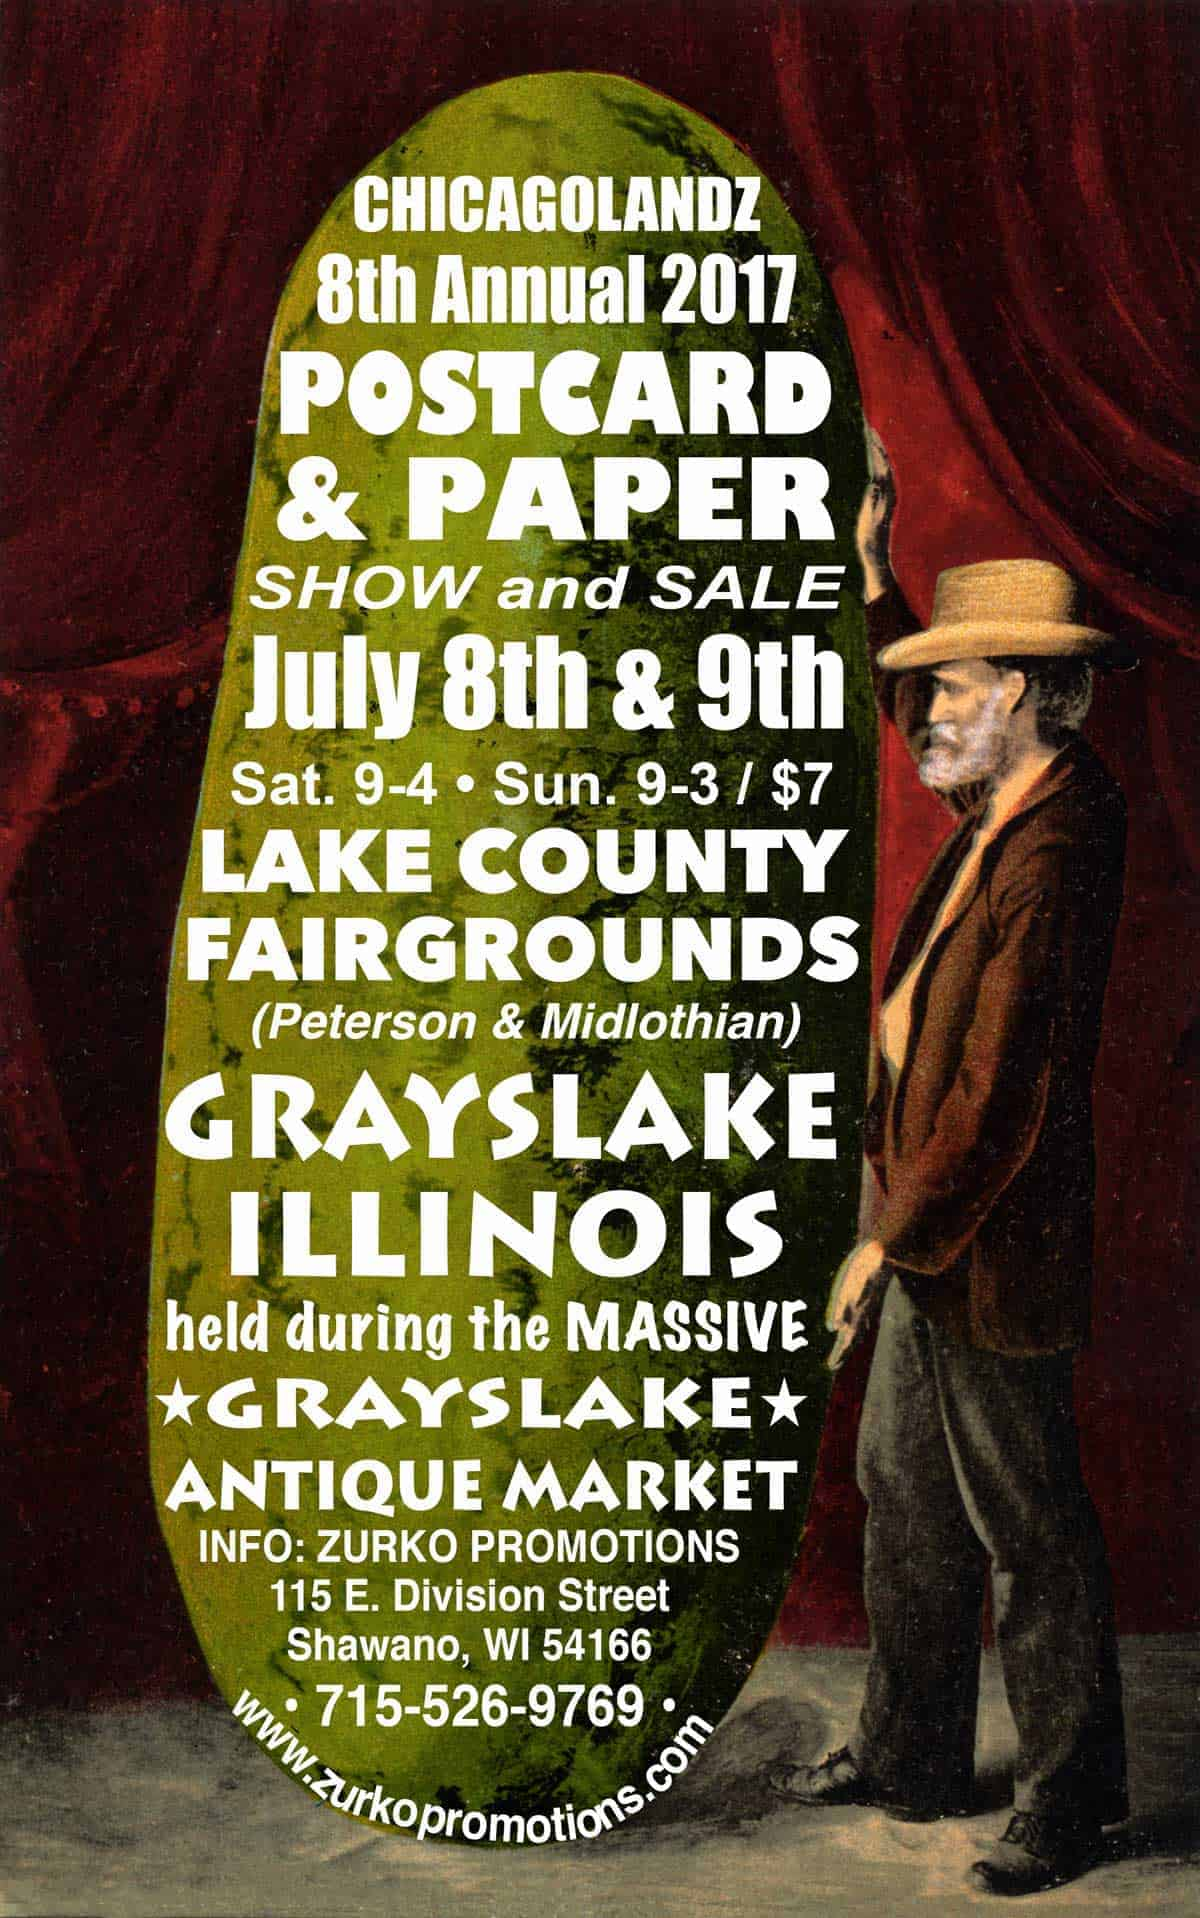 Chicago Grayslake Illinois Postcard and Paper Show